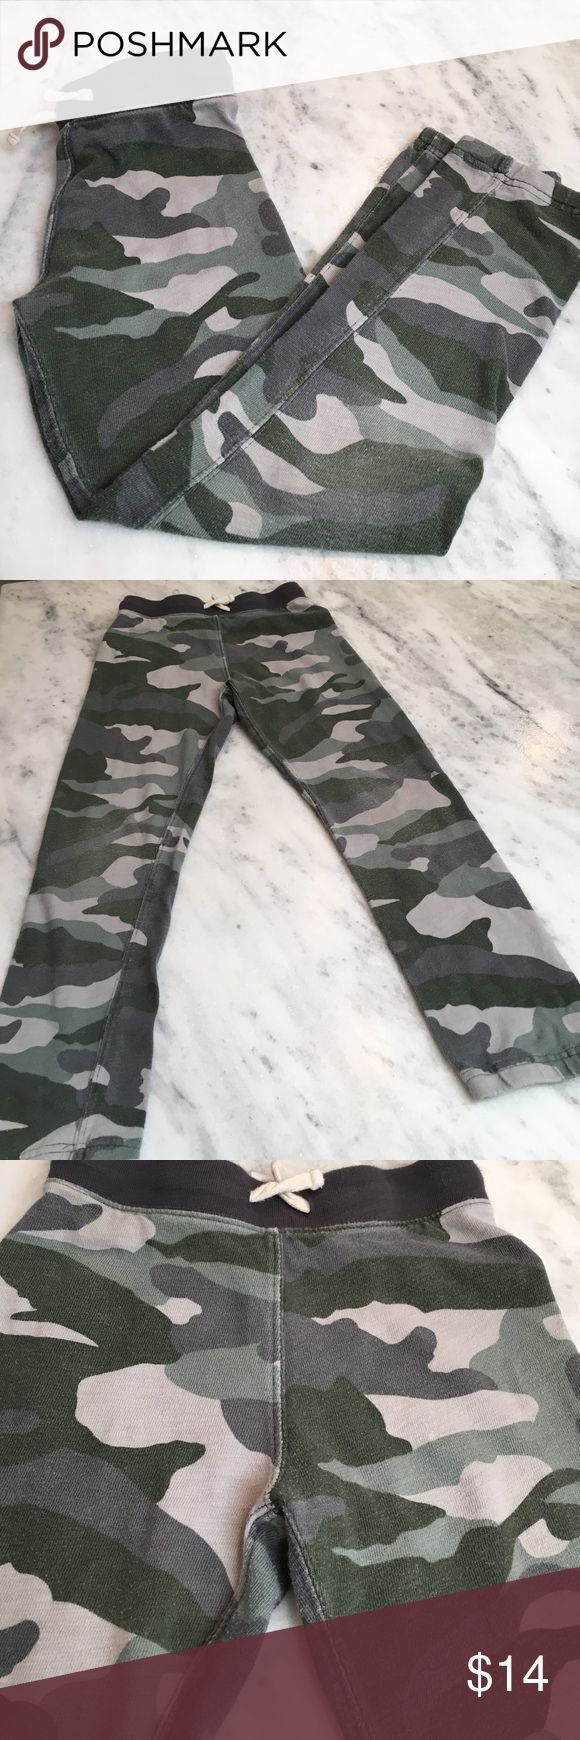 J.Crew Camouflage Sweat Pants J.Crew Camouflage Sweat Pants.  100% Cotton.  Straight Fit.  Used Condition- signs of wear; but definitely have some life left in them.  Sz 7  (J.Crew runs a little small) J. Crew Bottoms Sweatpants & Joggers